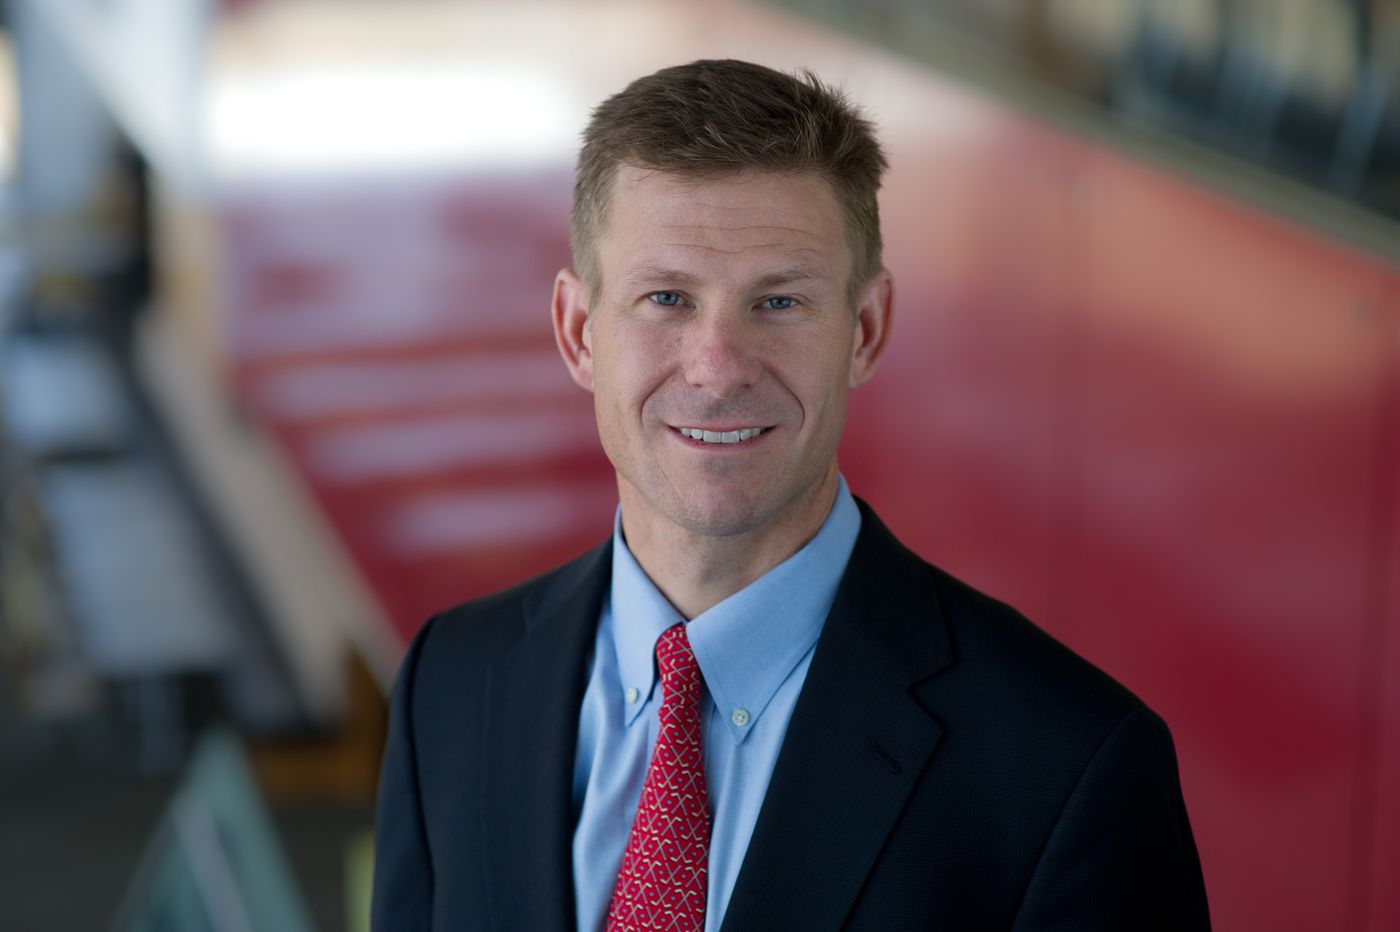 Vanguard names Joseph Brennan to newly created chief risk officer role